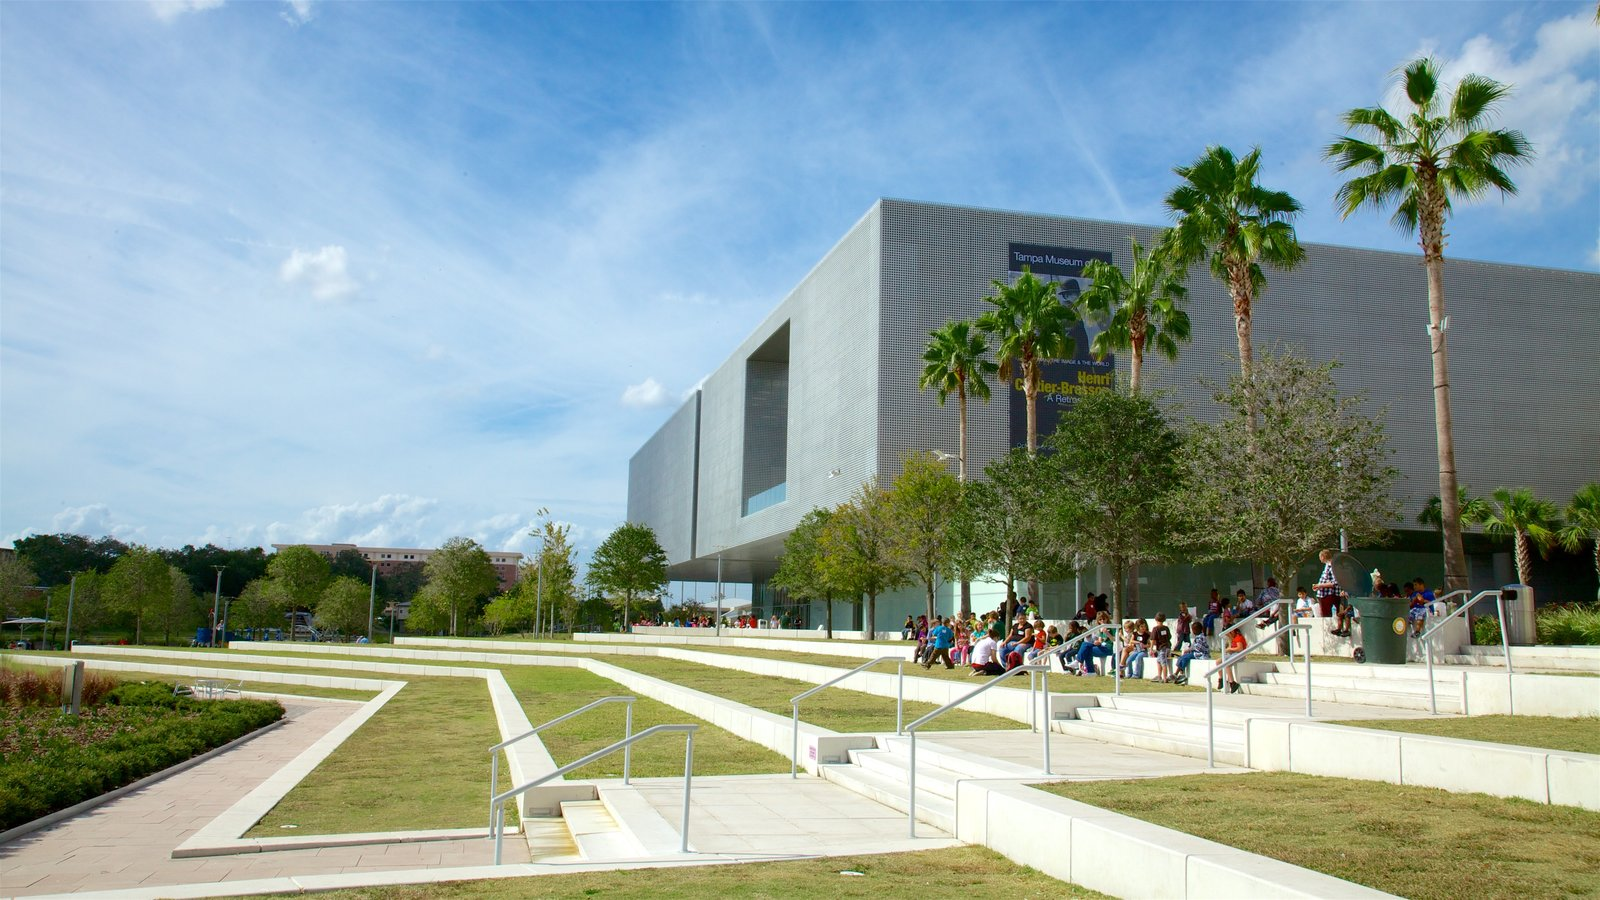 Tampa Museum of Art which includes modern architecture and a park as well as a small group of people